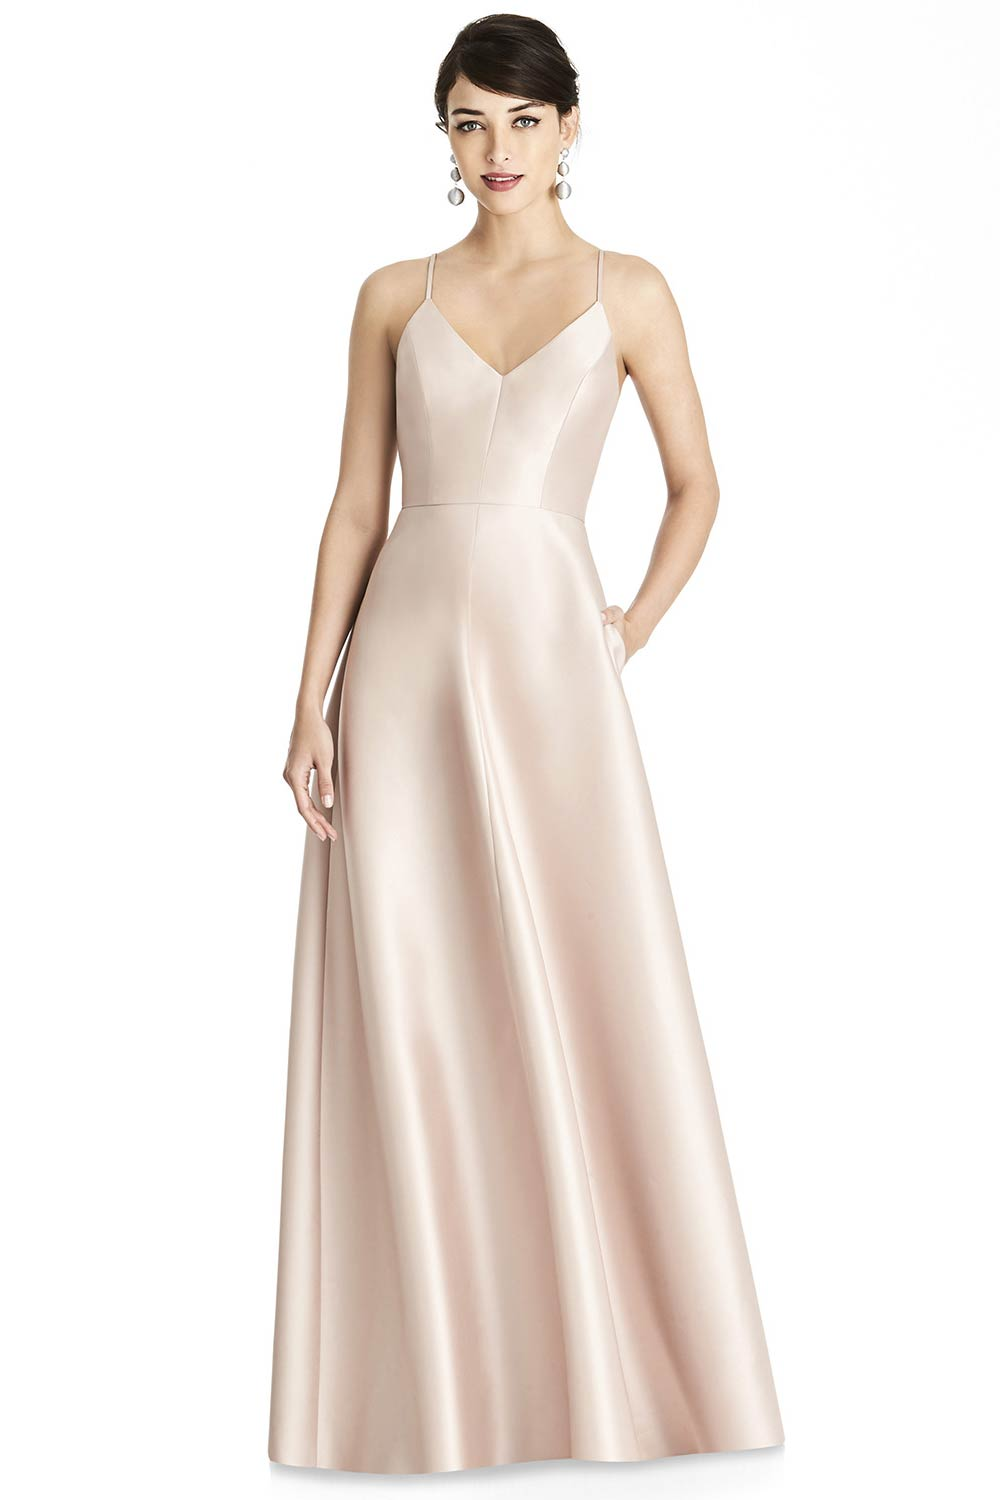 bridesmaid-dresses-dessy-26016